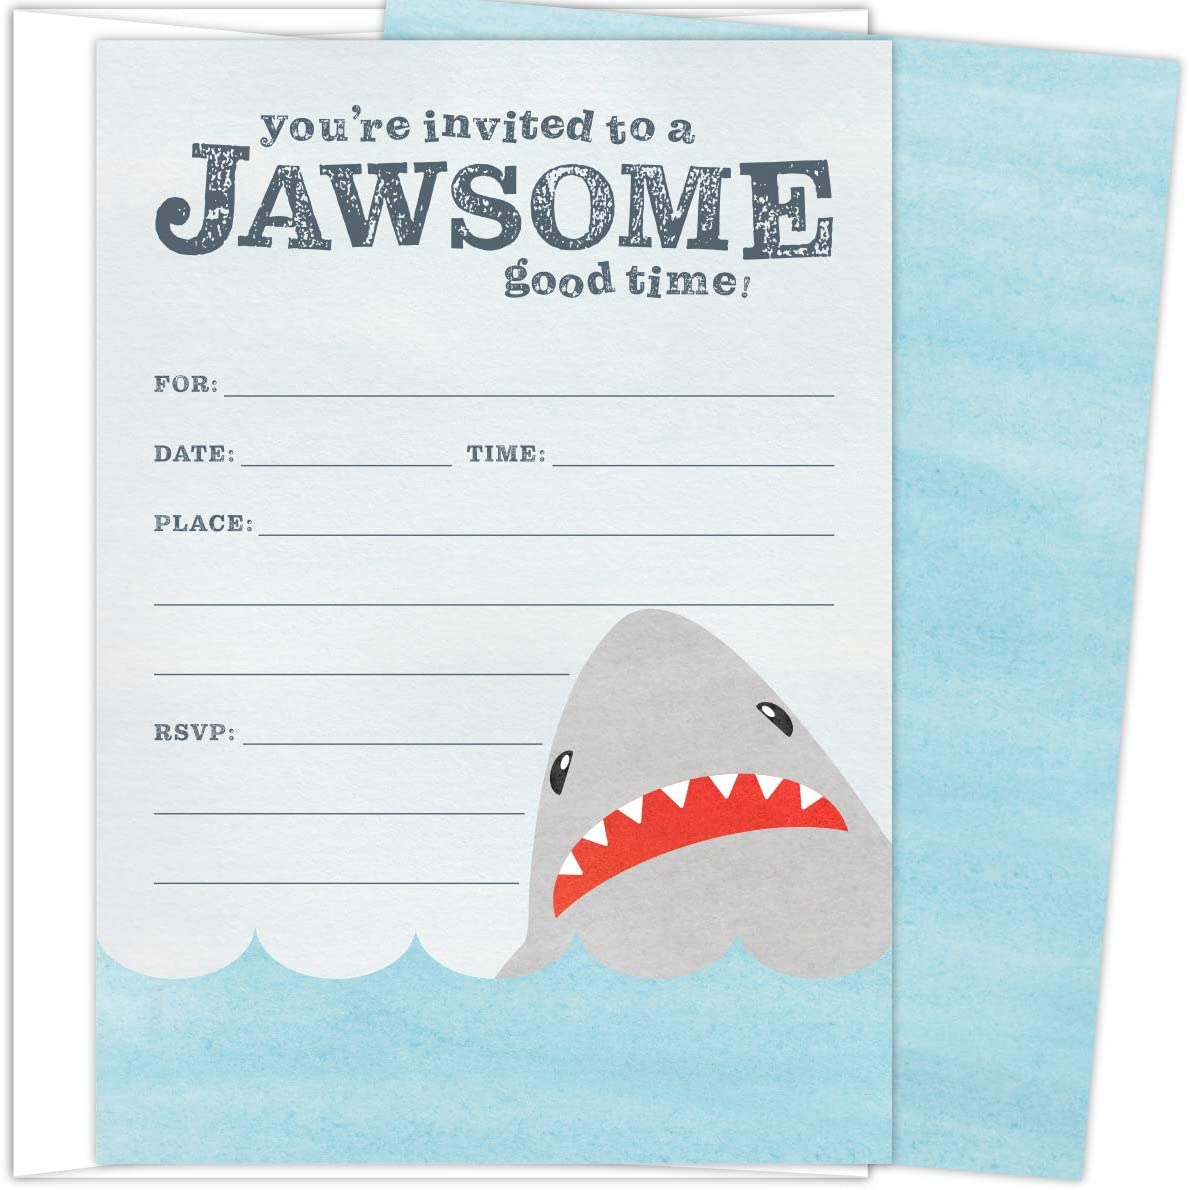 Koko Paper Co Shark Invitations. Set of 25 Fill-In Style Cards and White Envelopes. Perfect for Jawsome Good Times such as Birthdays, Graduations, Baby Showers and Any Occasions.